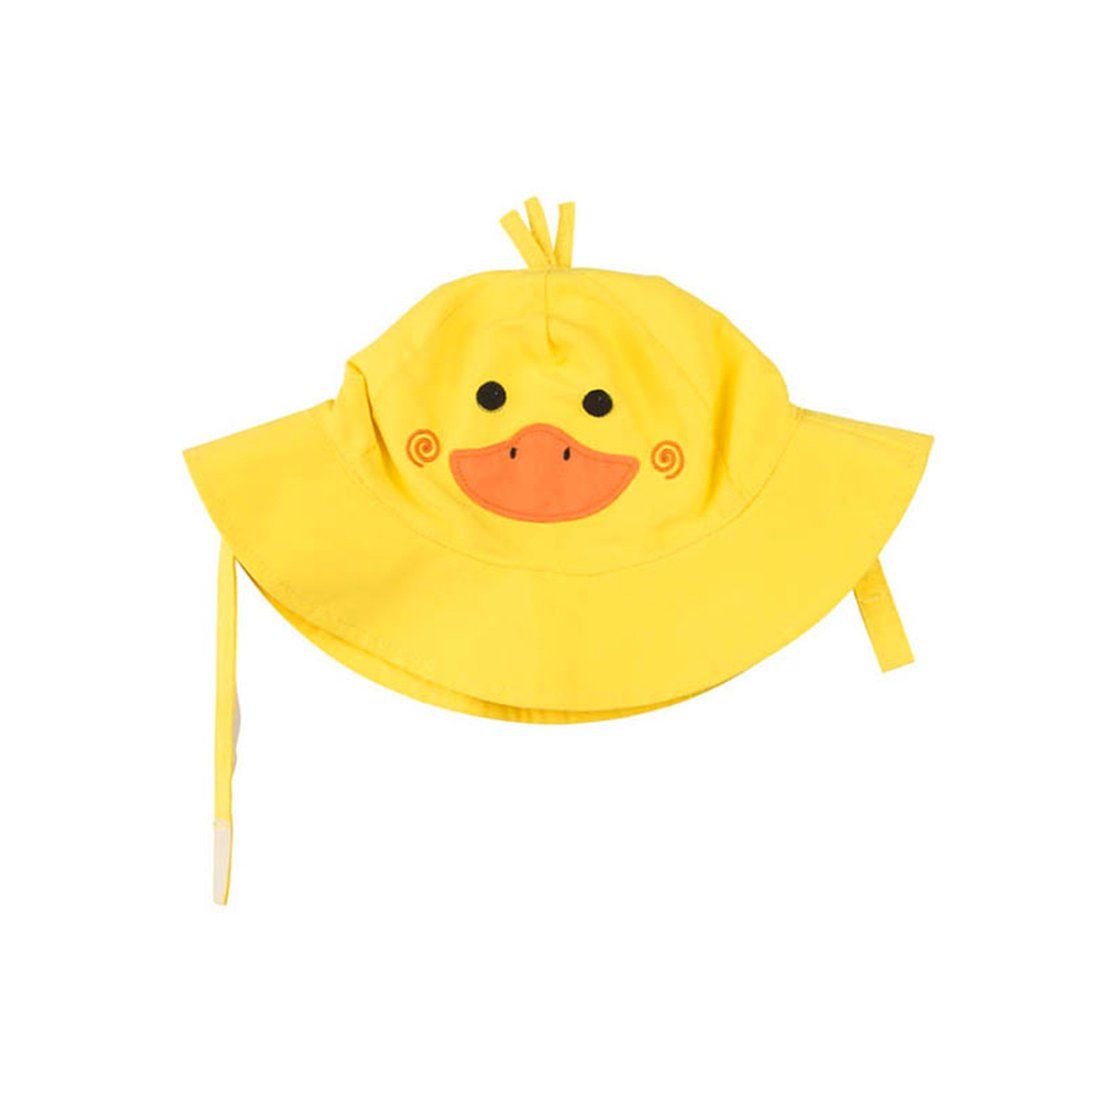 29ddfd309 ZOOCCHINI UPF50+ Baby Sun Hat - Puddles the Duck